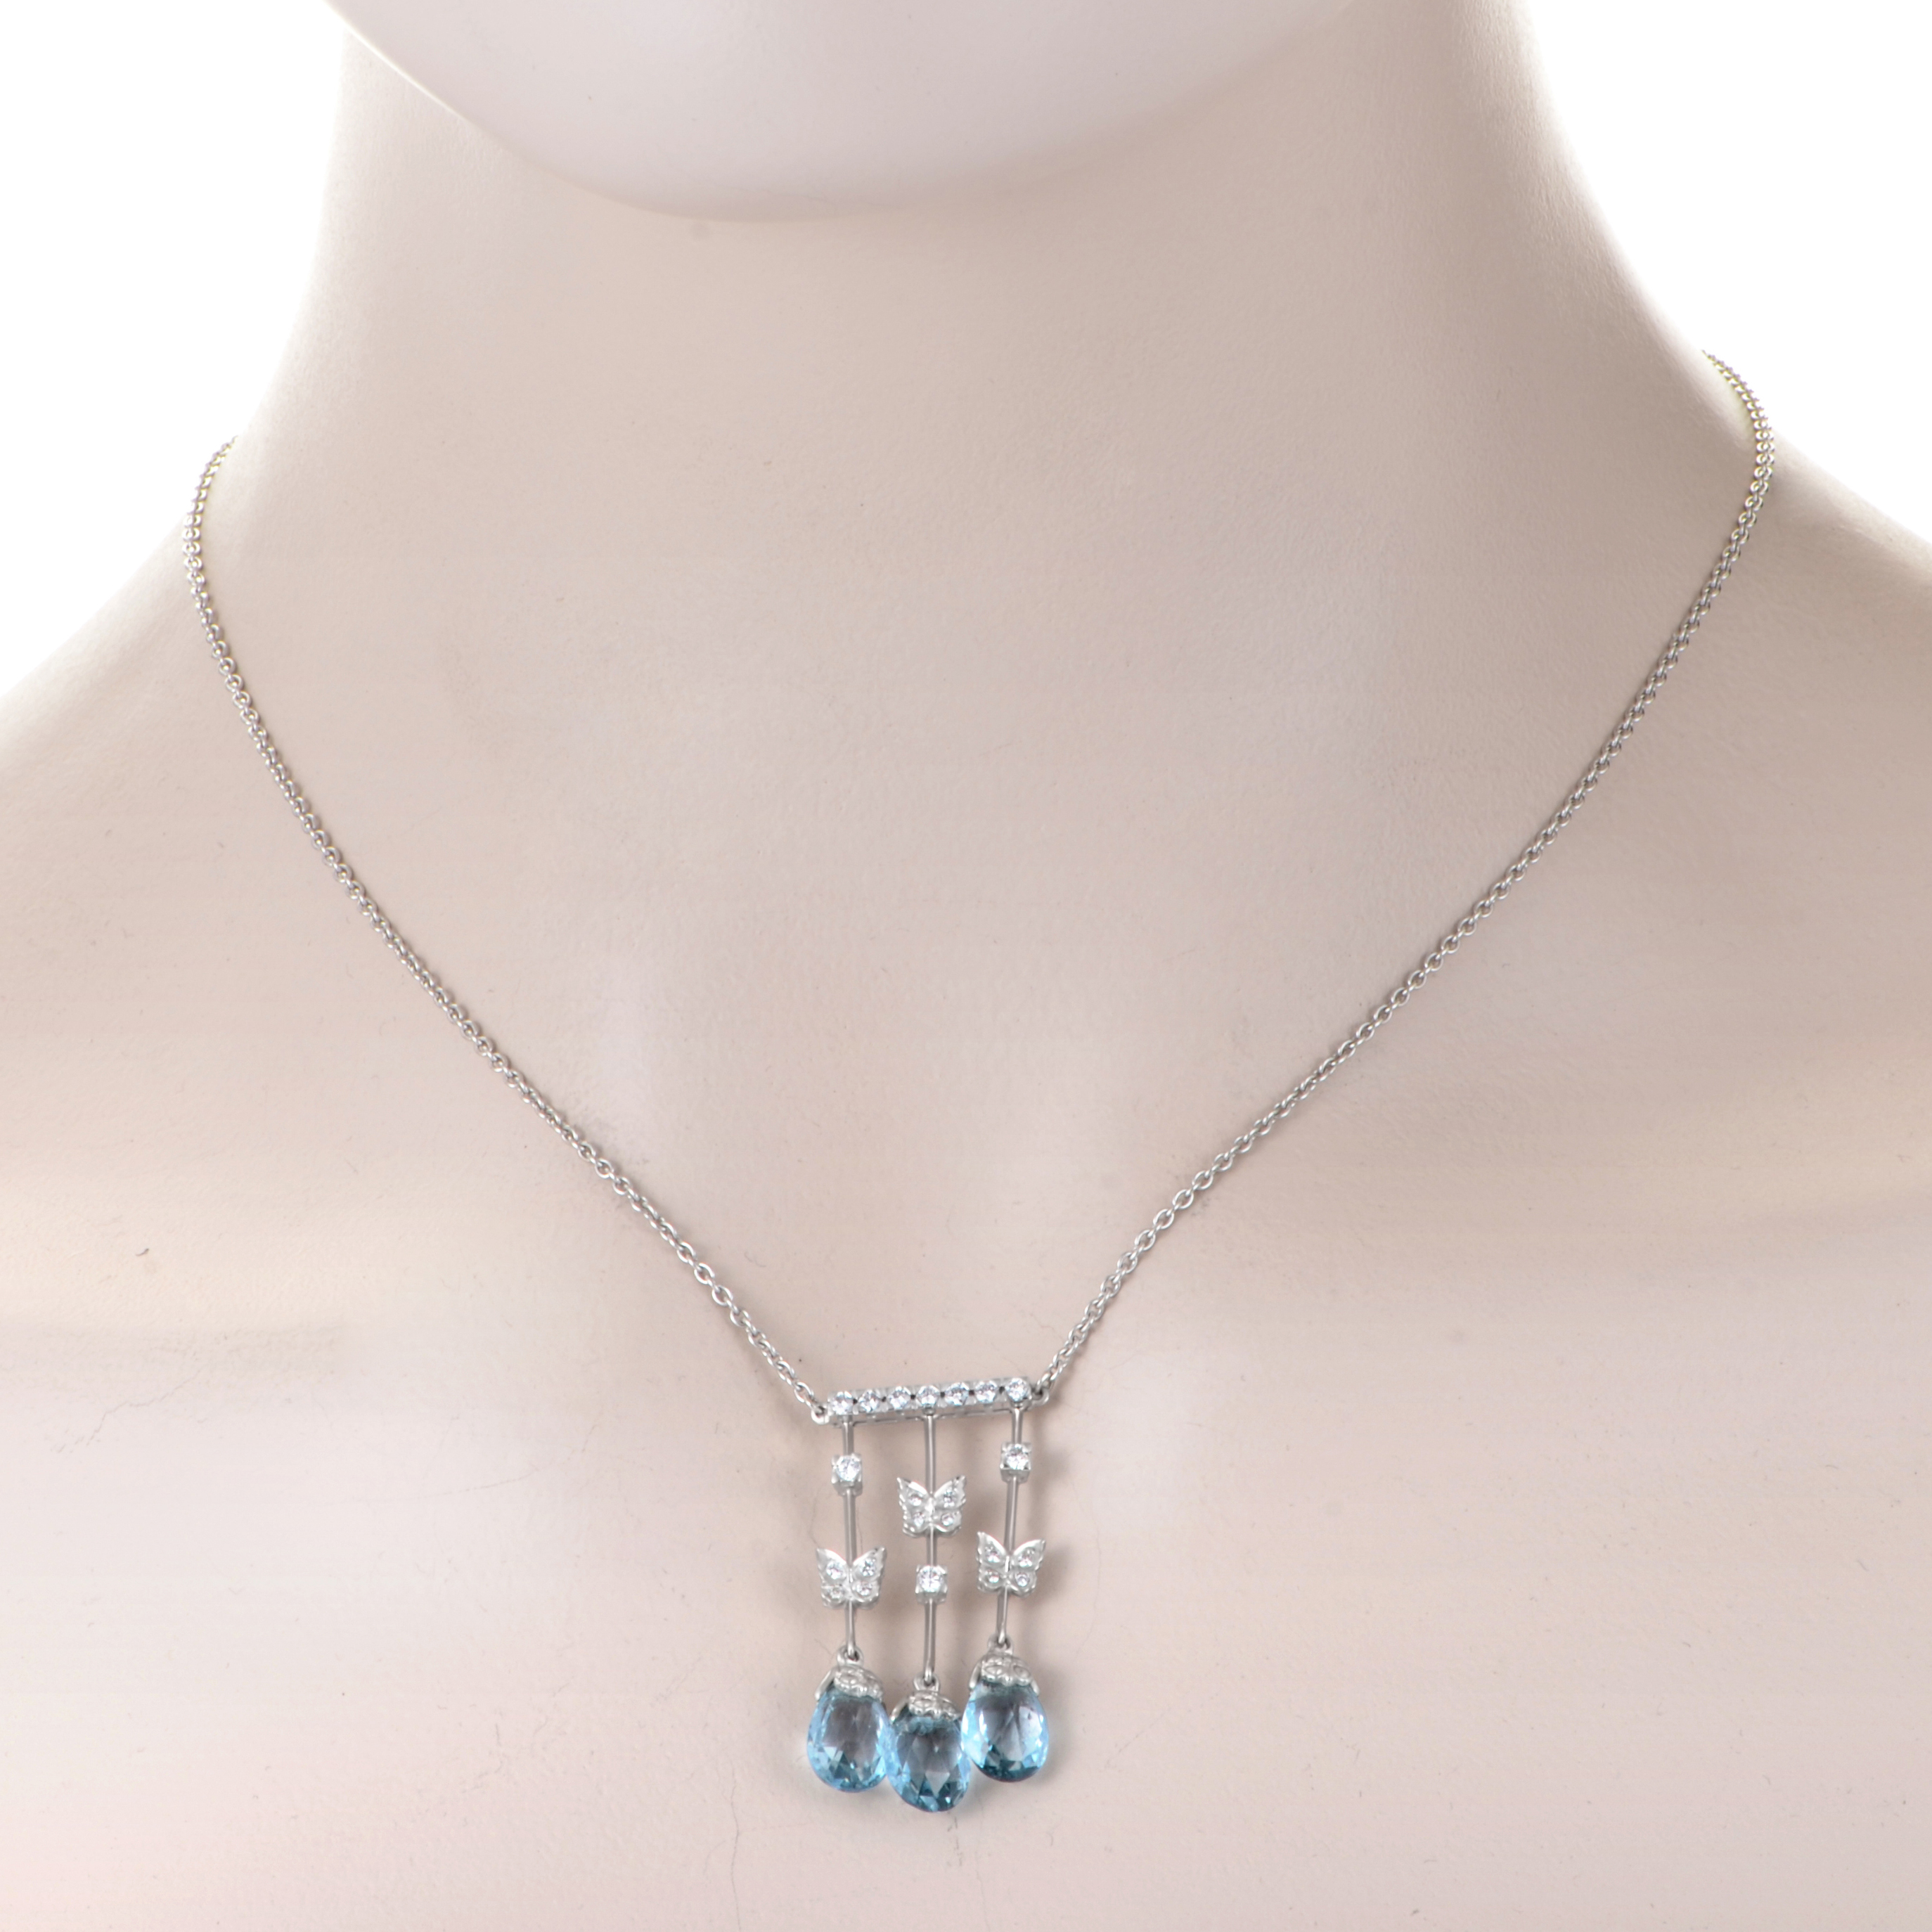 Carrera y Carrera Baile De Mariposas 18K White Gold Diamond & Topaz Briolette Pendant Necklace